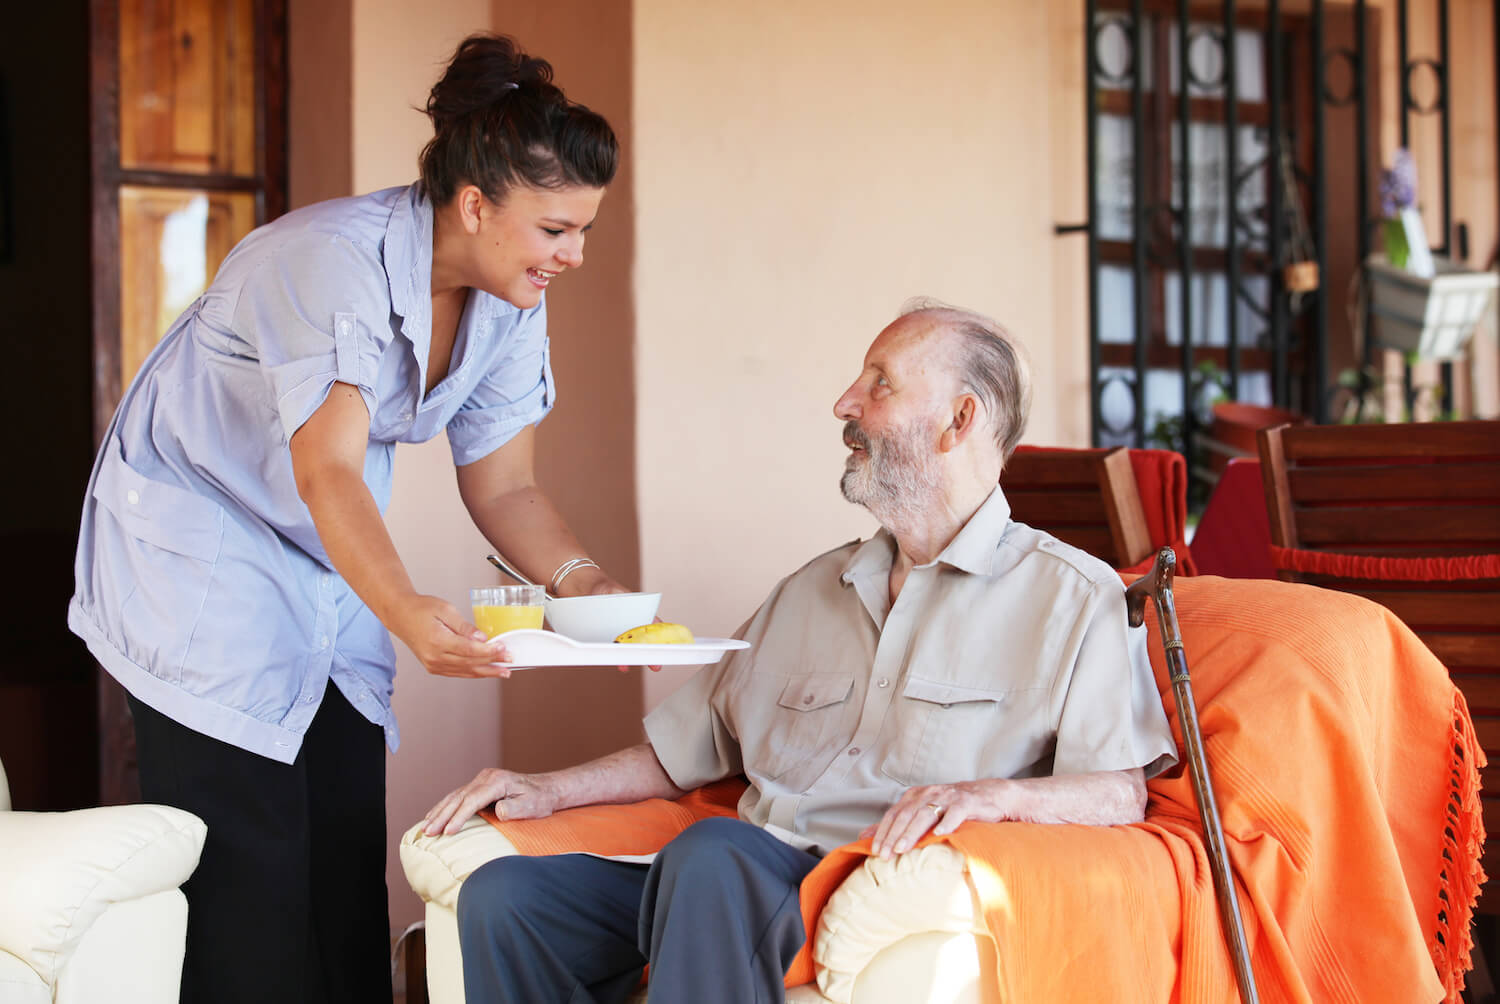 Home Healthcare worker assisting a senior at their home with meal preparation.